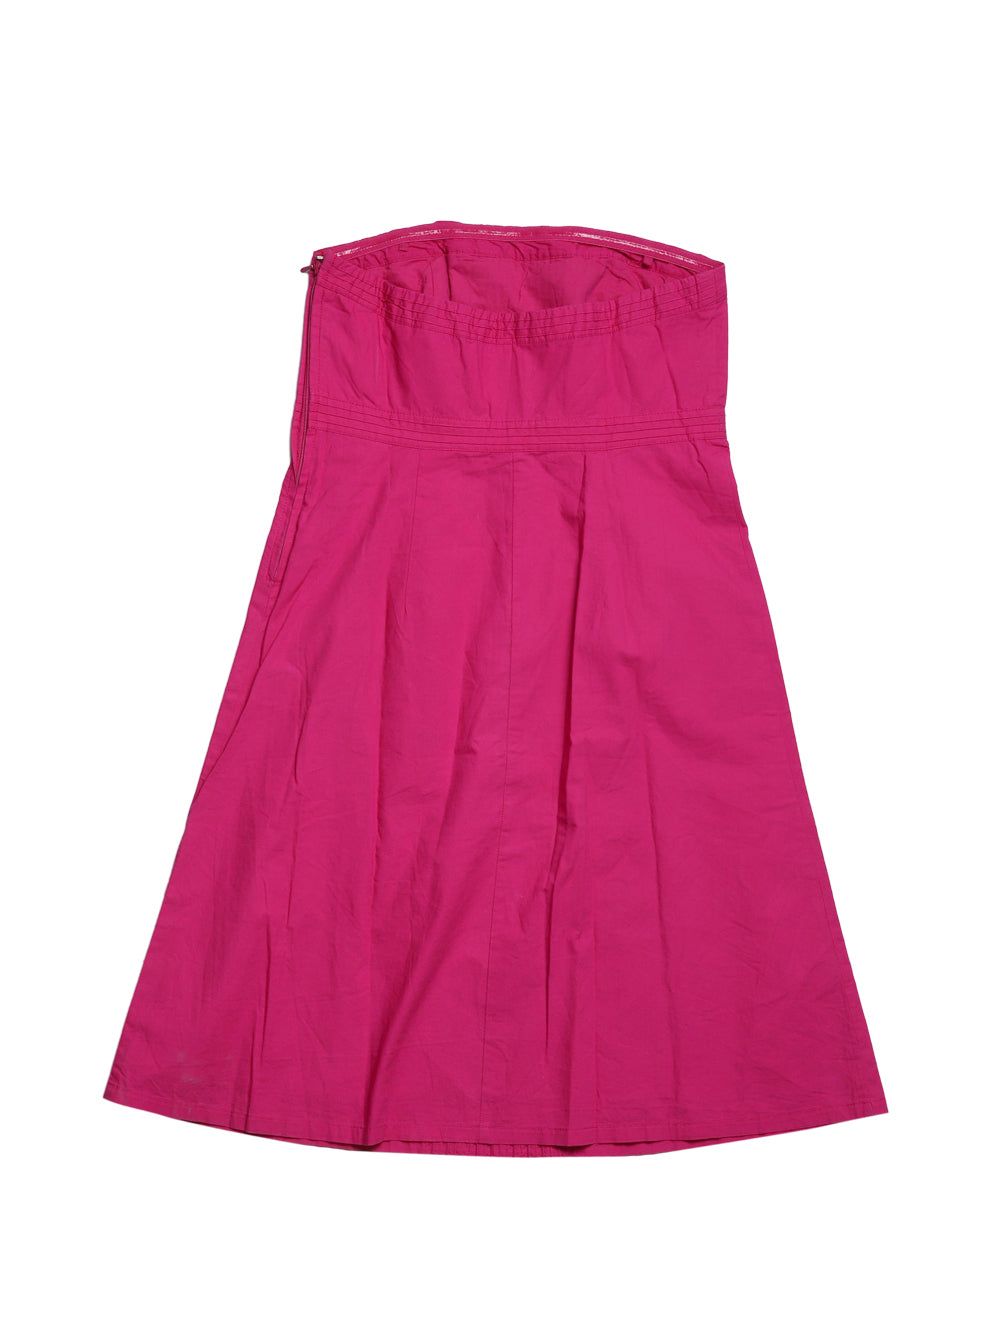 Back photo of Preloved Gap Pink Woman's dress - size 8/S